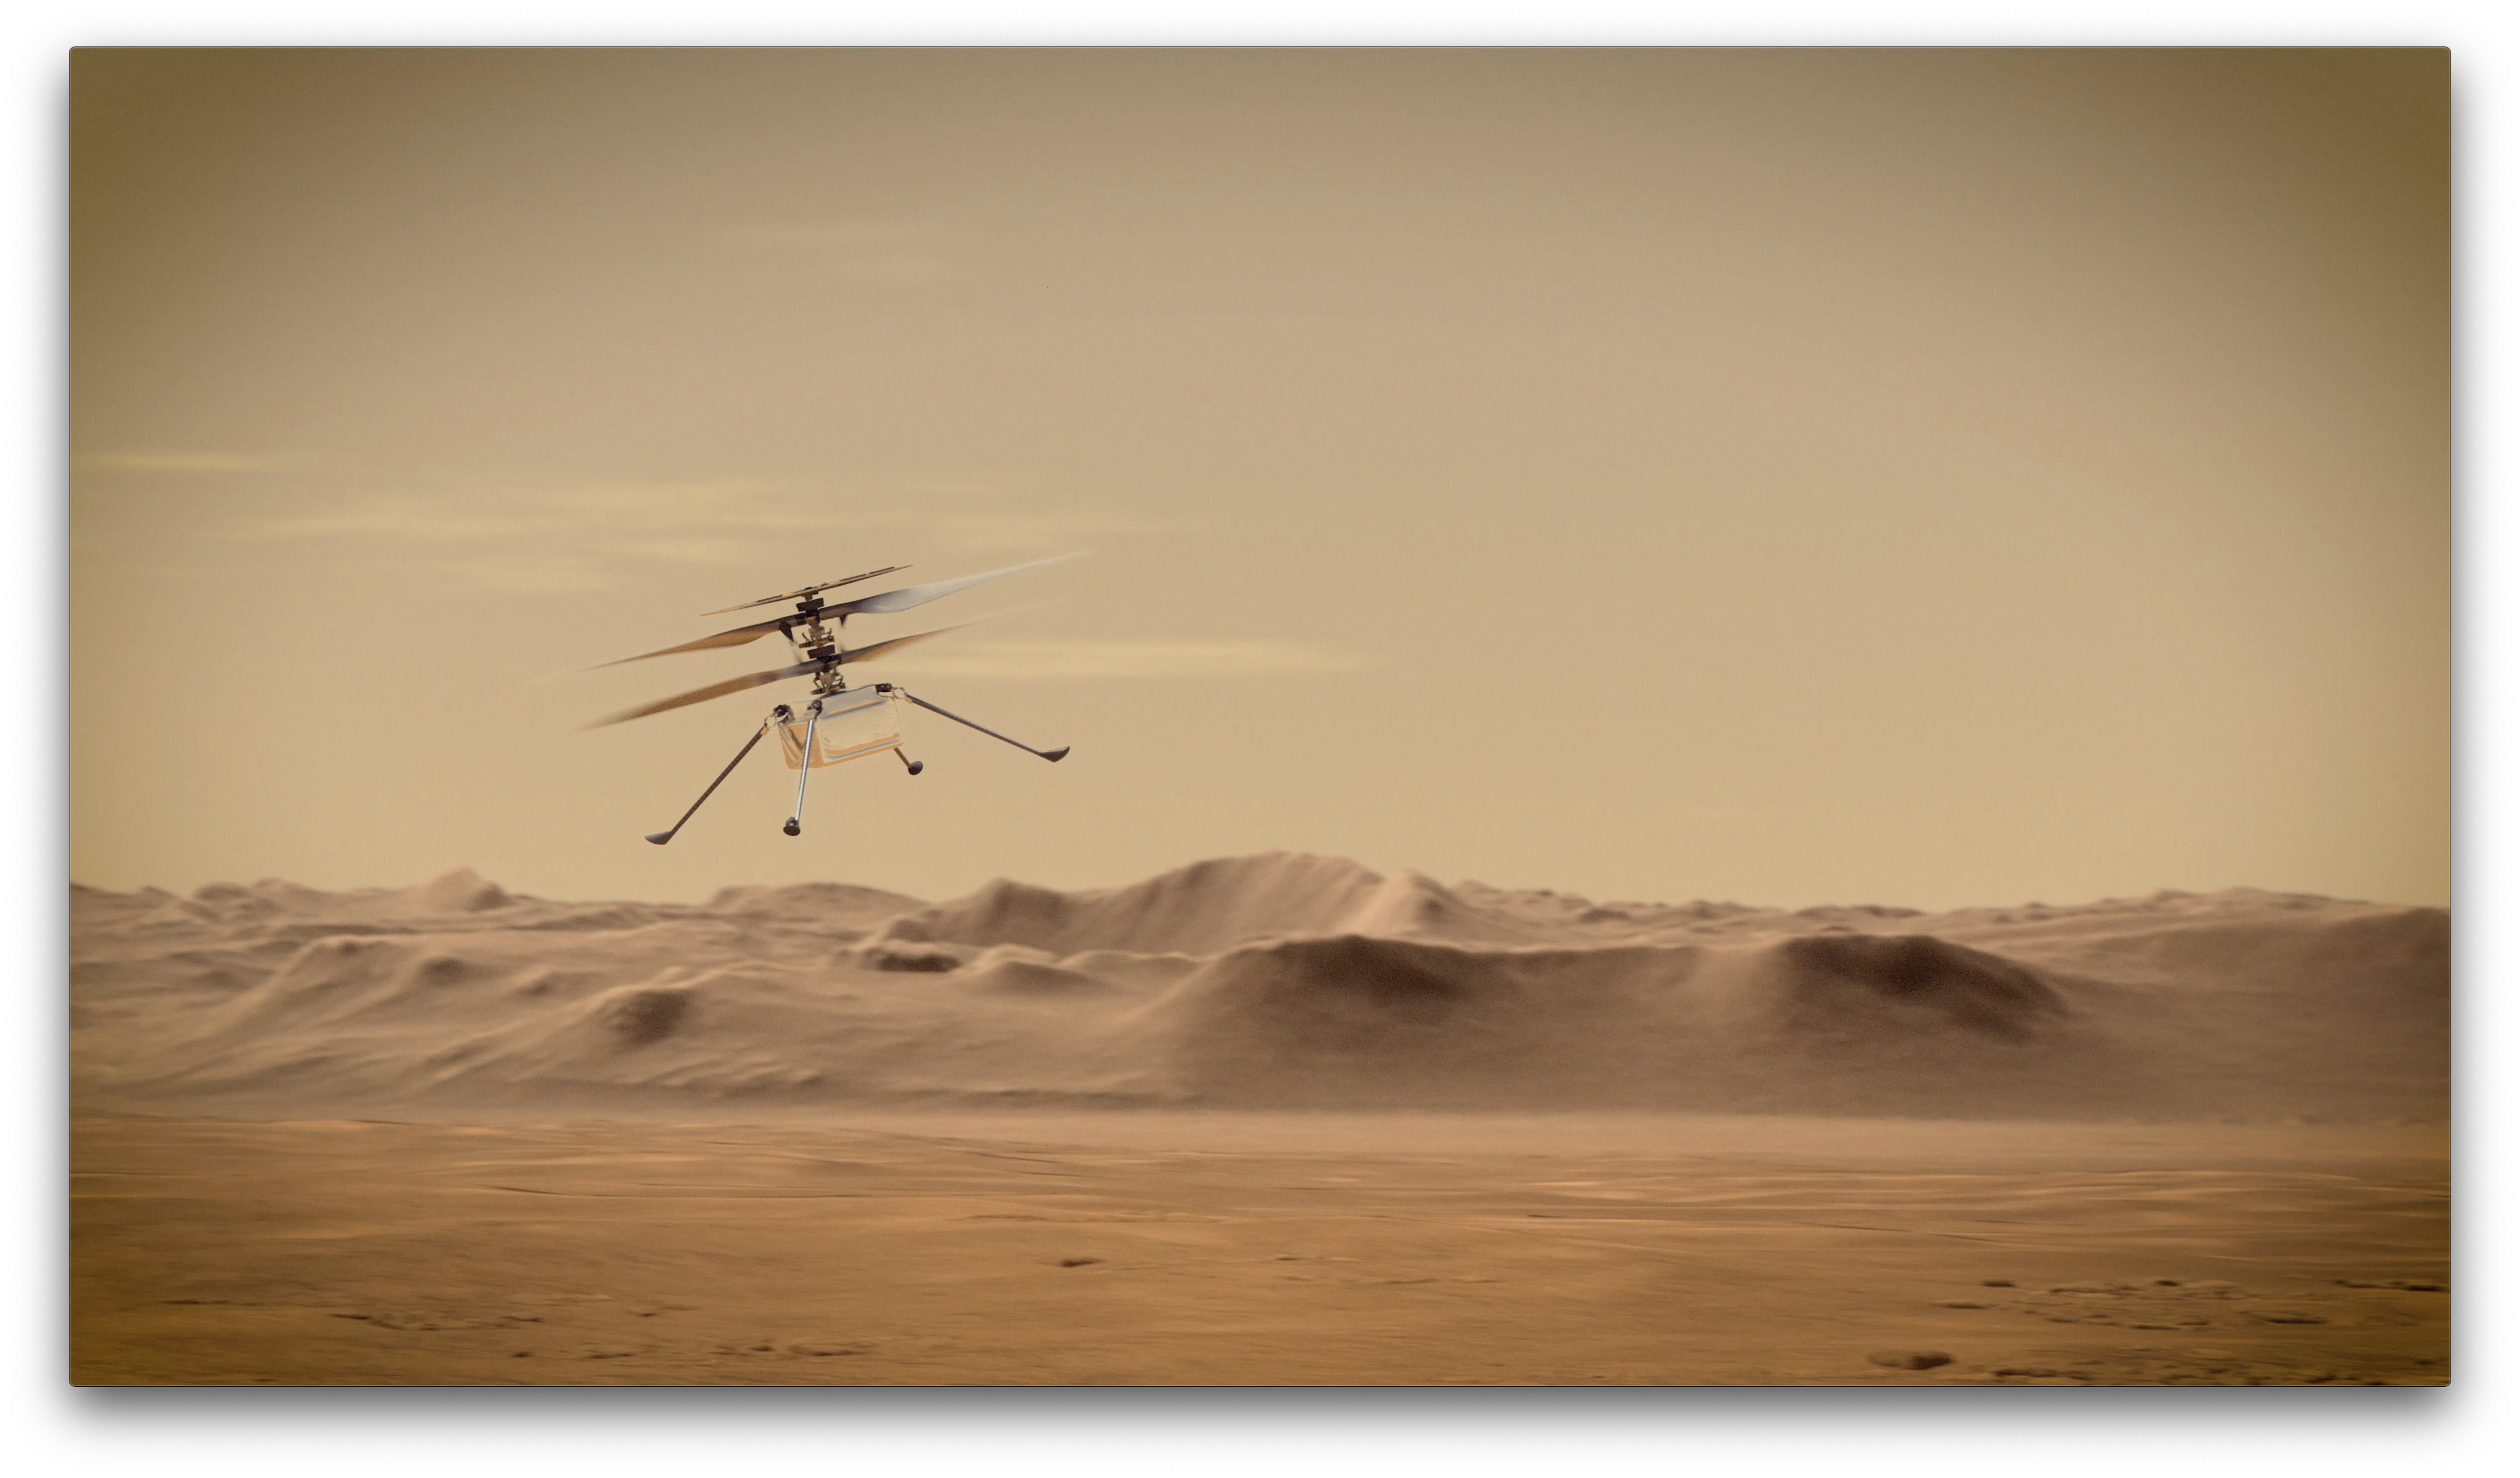 An artist's concept of NASA's Ingenuity Mars helicopter taking flight.